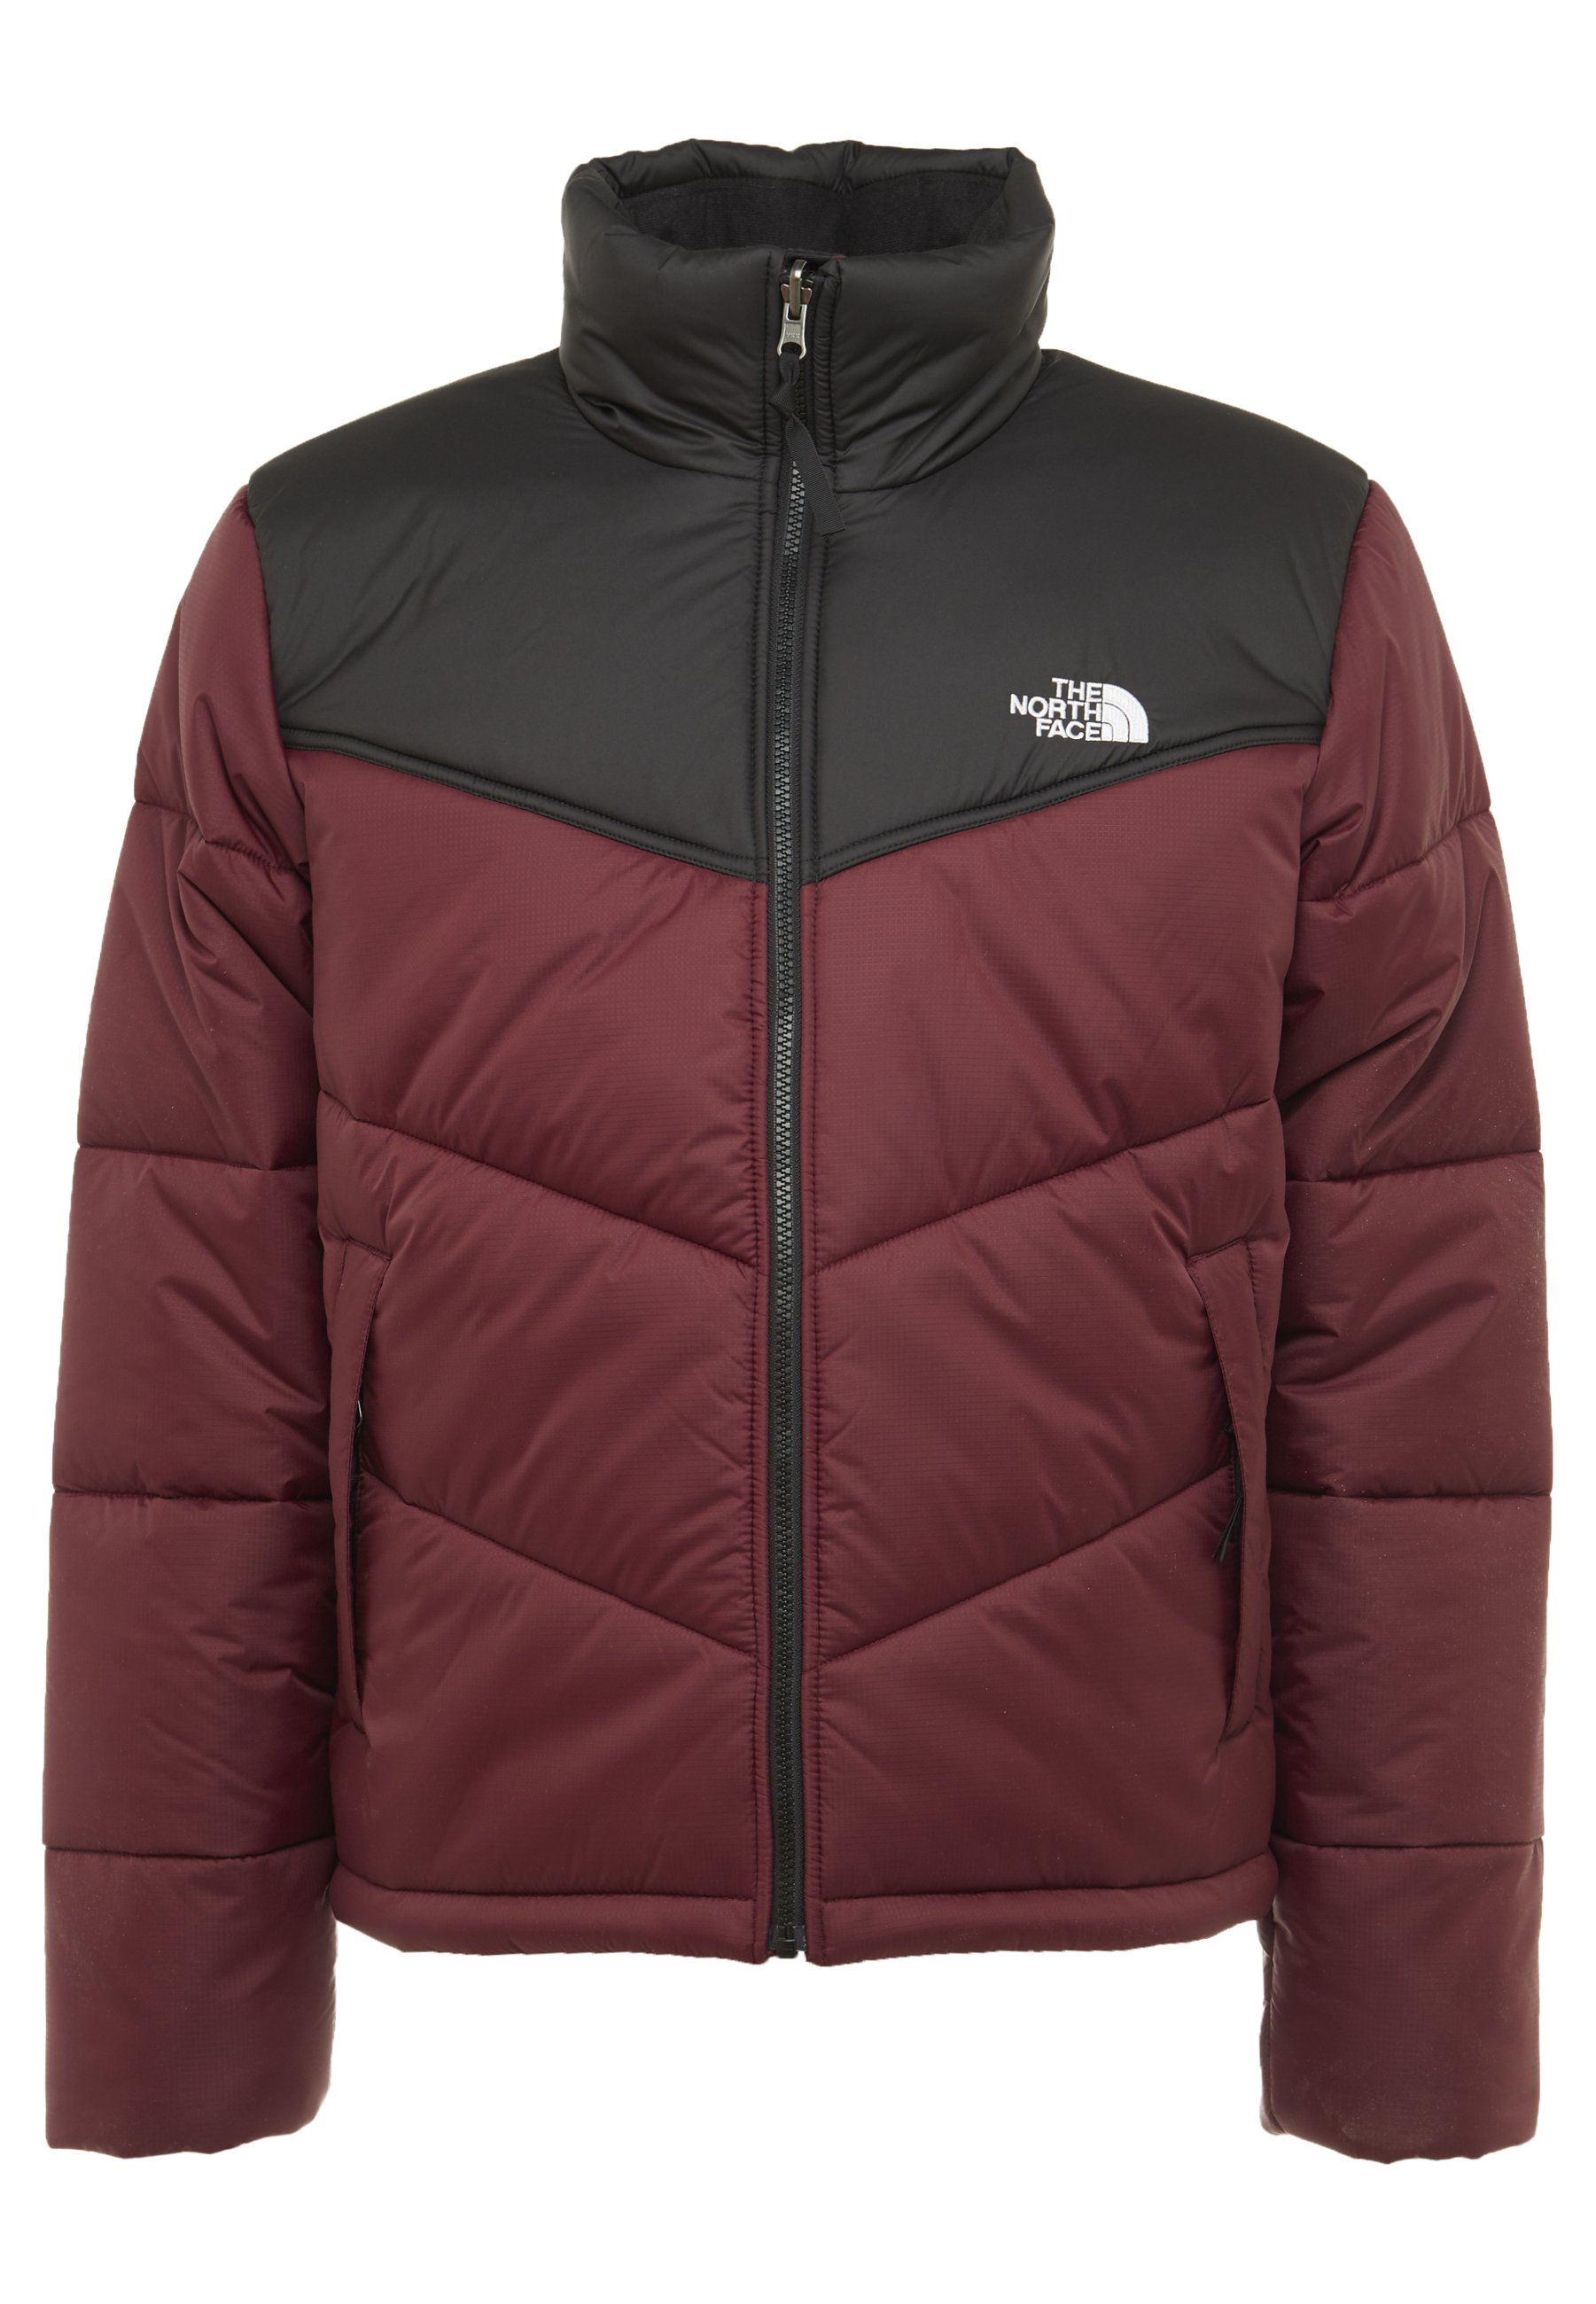 JACKET Winterjacke deep garnet red